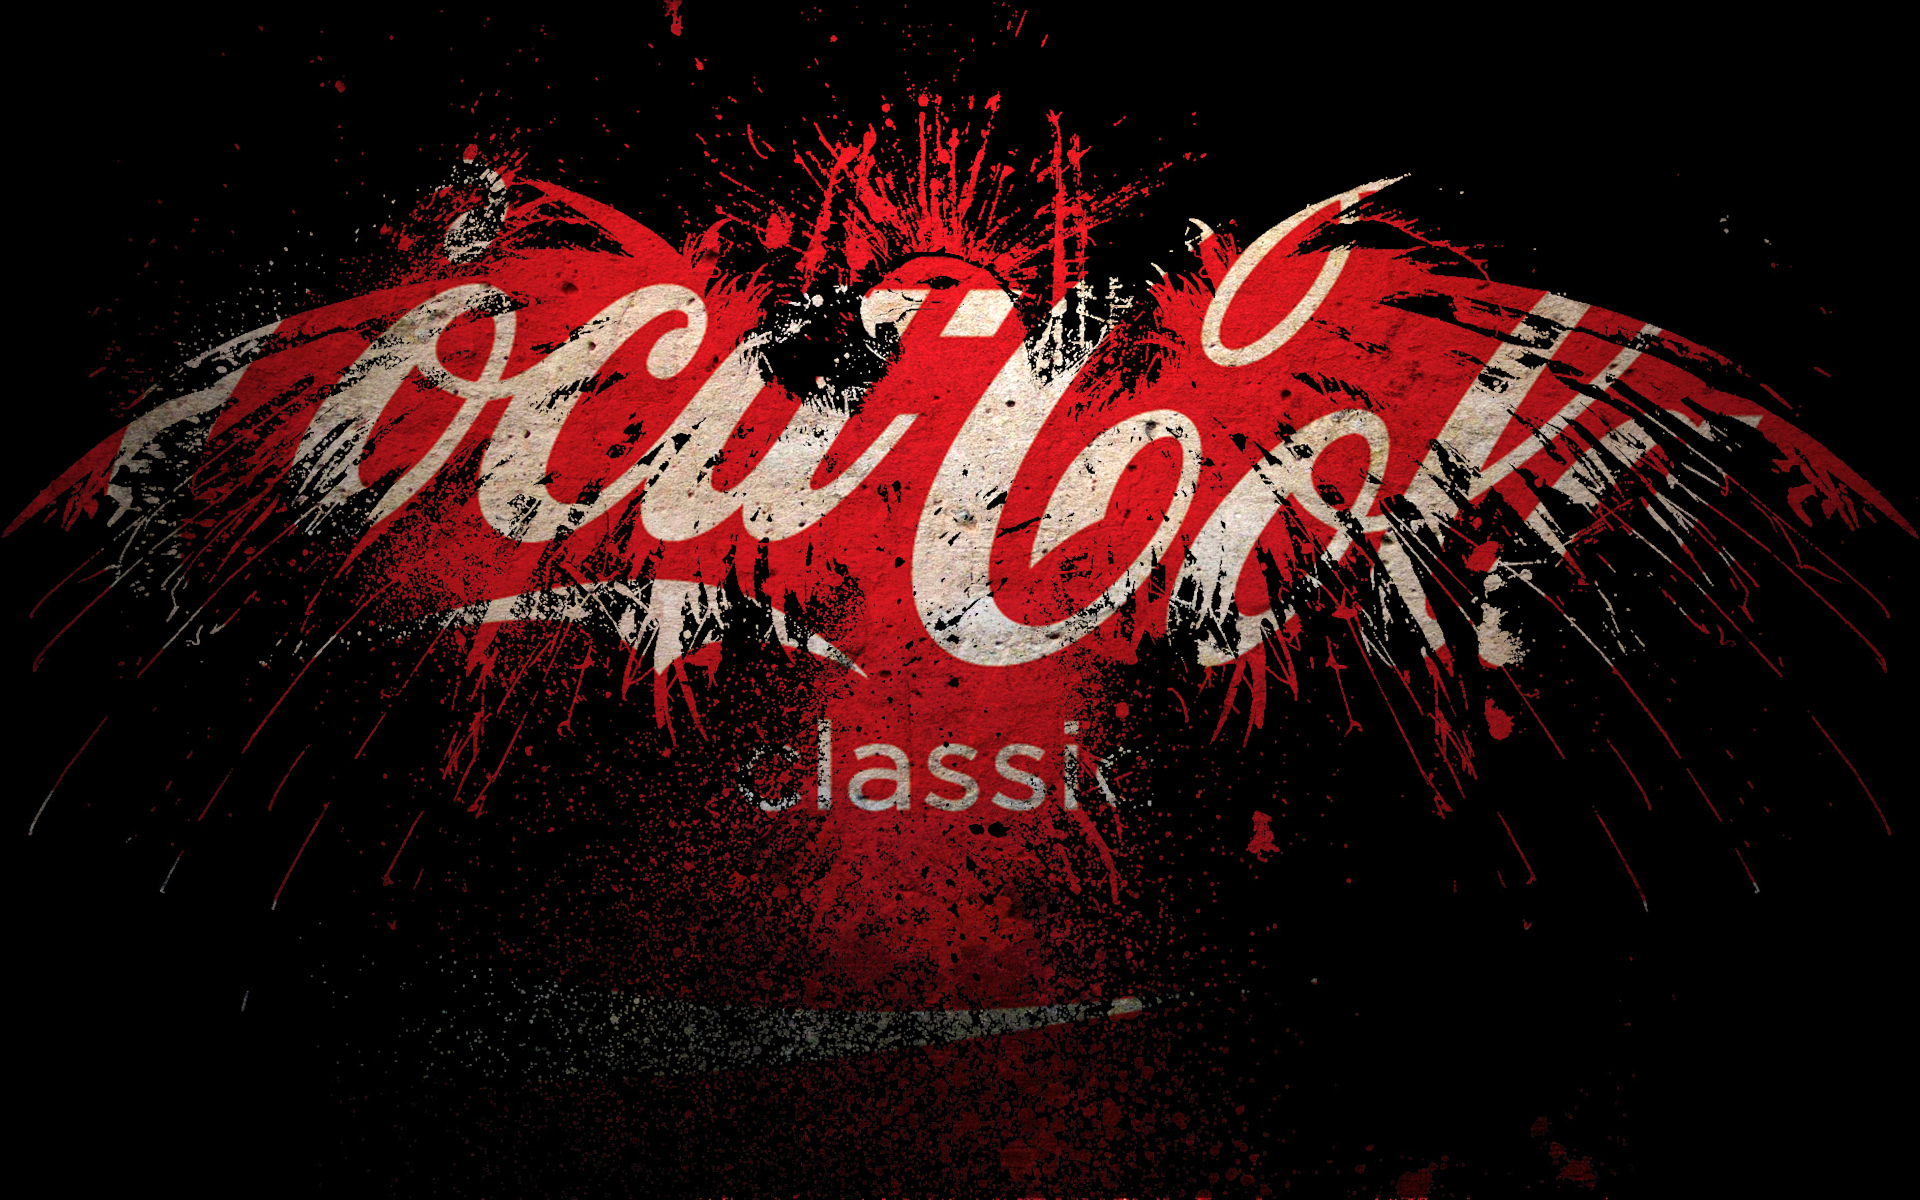 Coke a cola wallpaper wallpapersafari - Vintage coke wallpaper ...